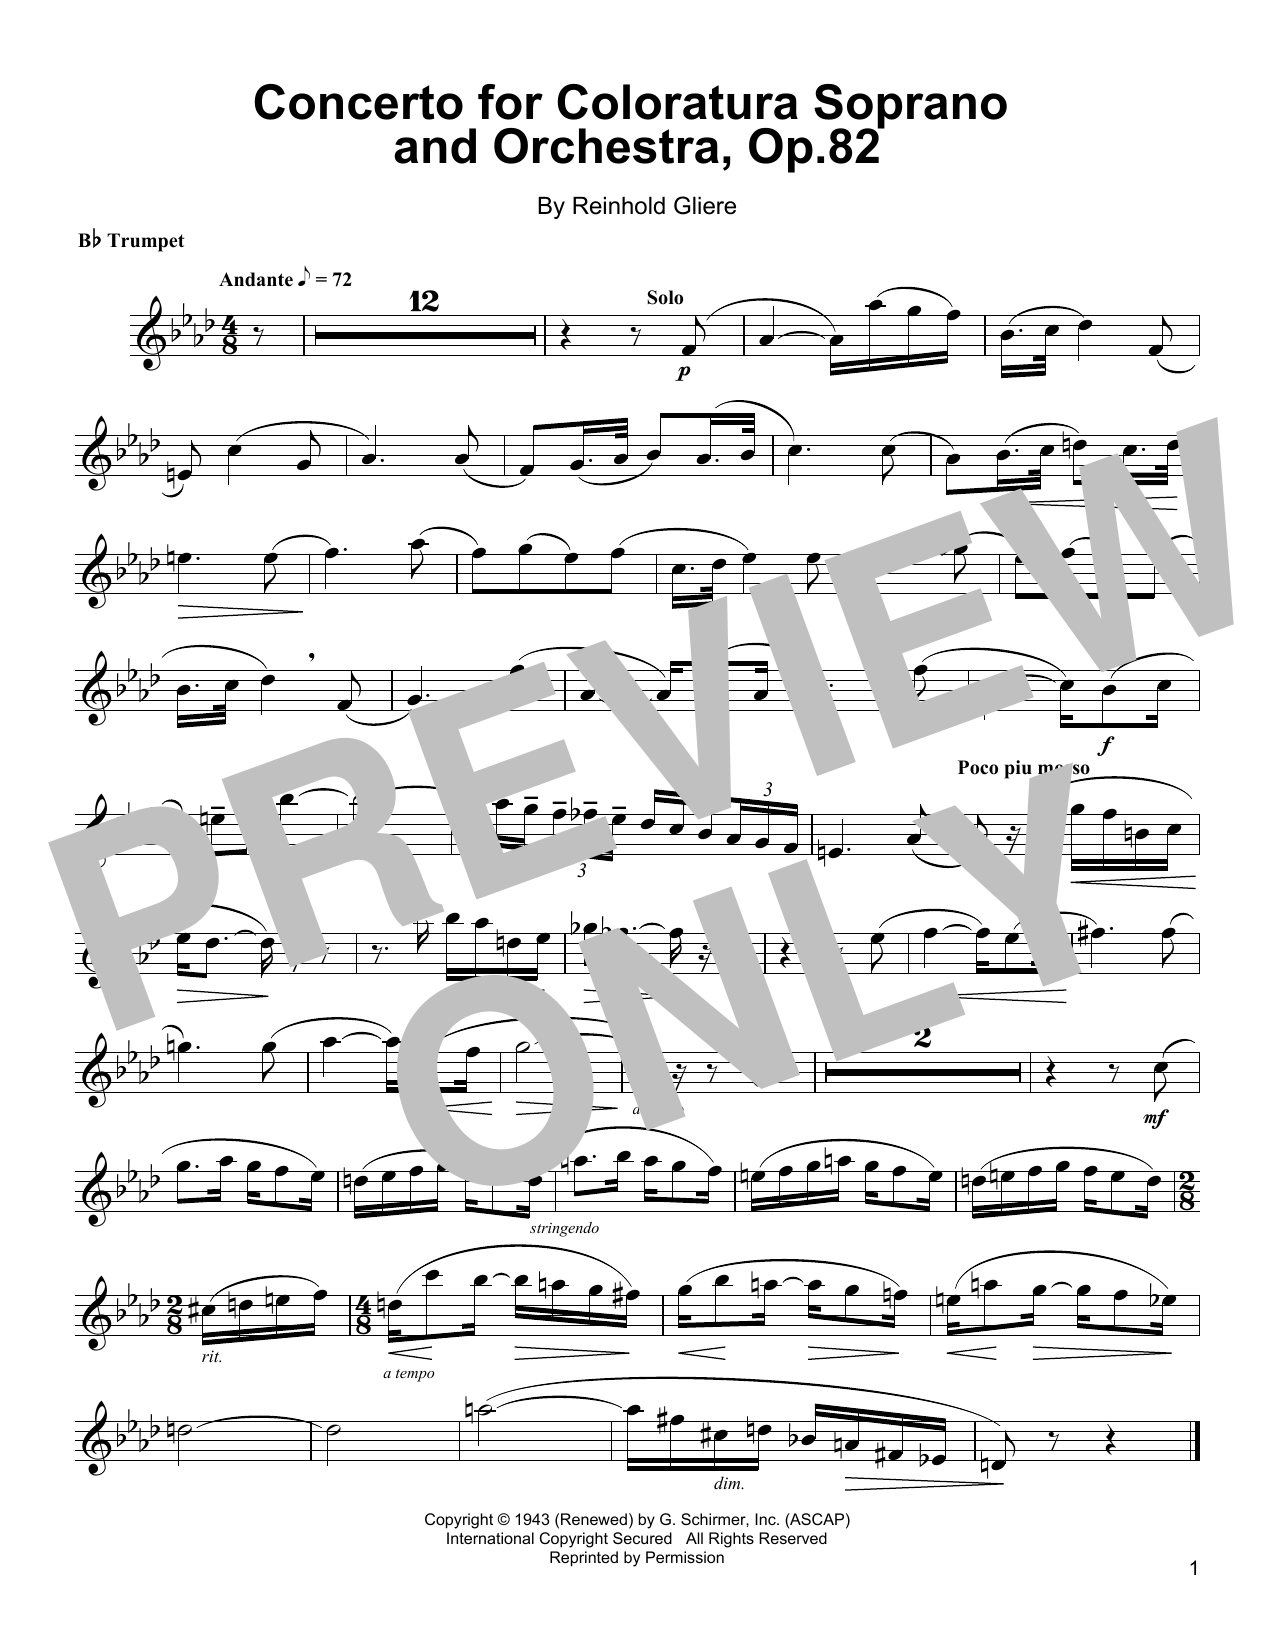 Arturo Sandoval Concerto For Coloratura Soprano And Orchestra, Op. 82 sheet music notes and chords